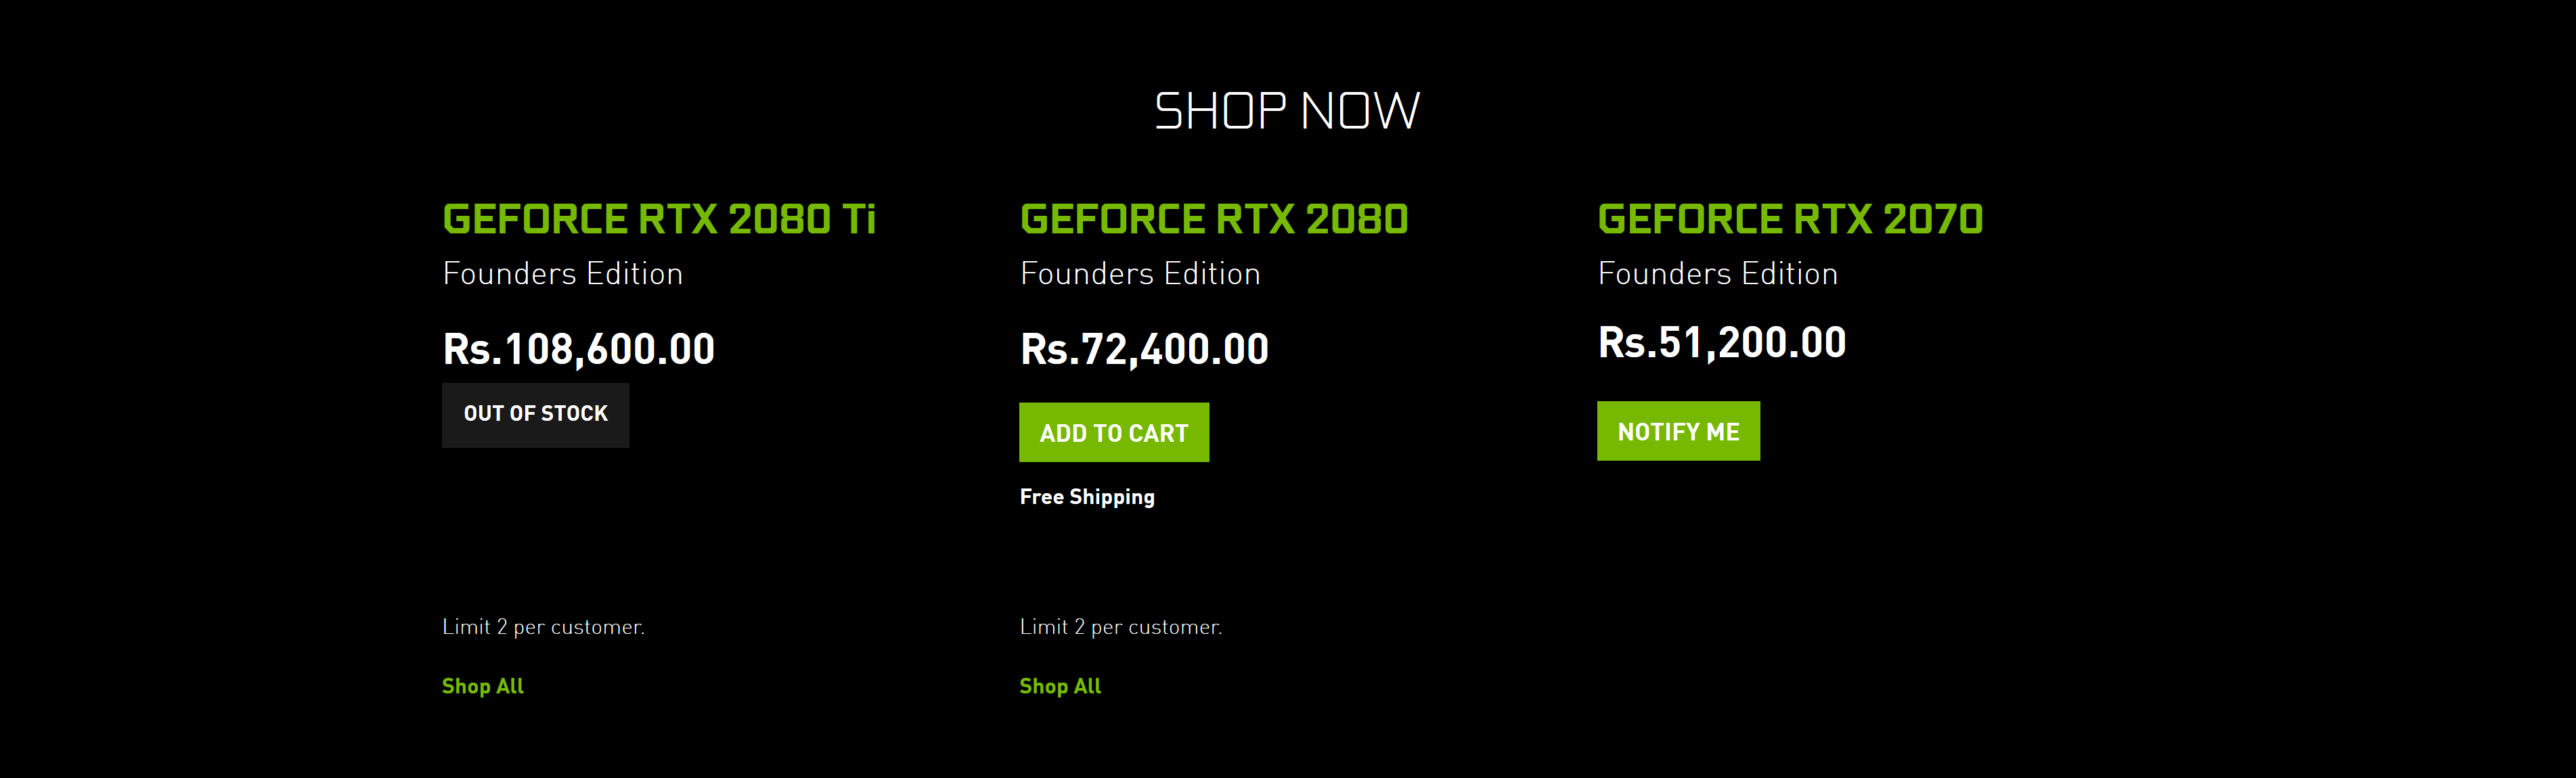 NVIDIA Increases Price of GeForce RTX 2080 Ti By $85